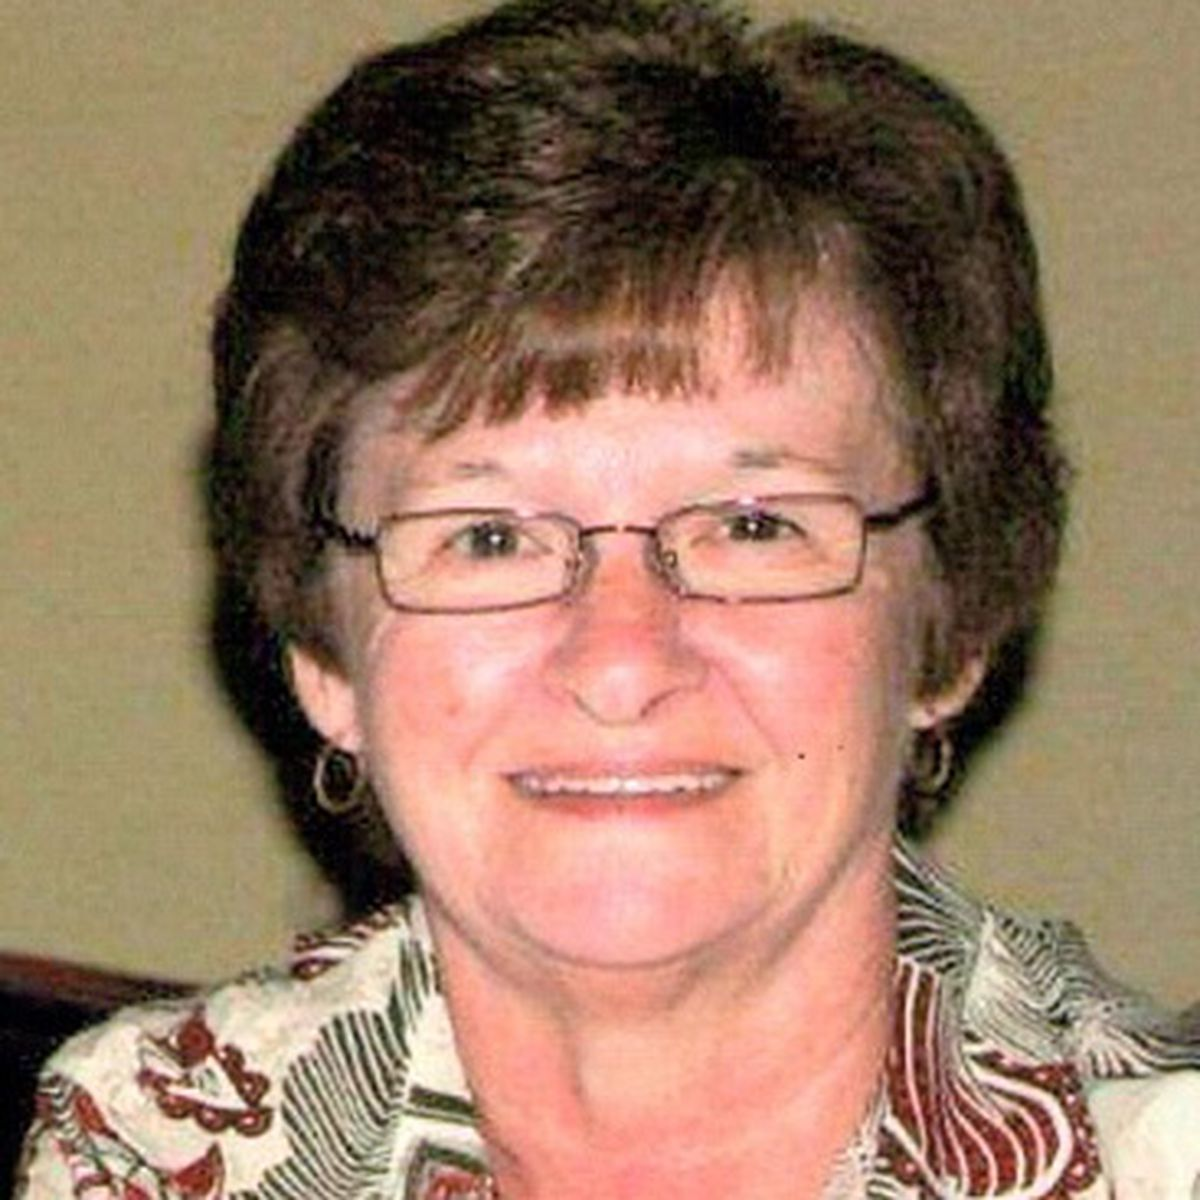 Margo Schirmer, 71, of Black River